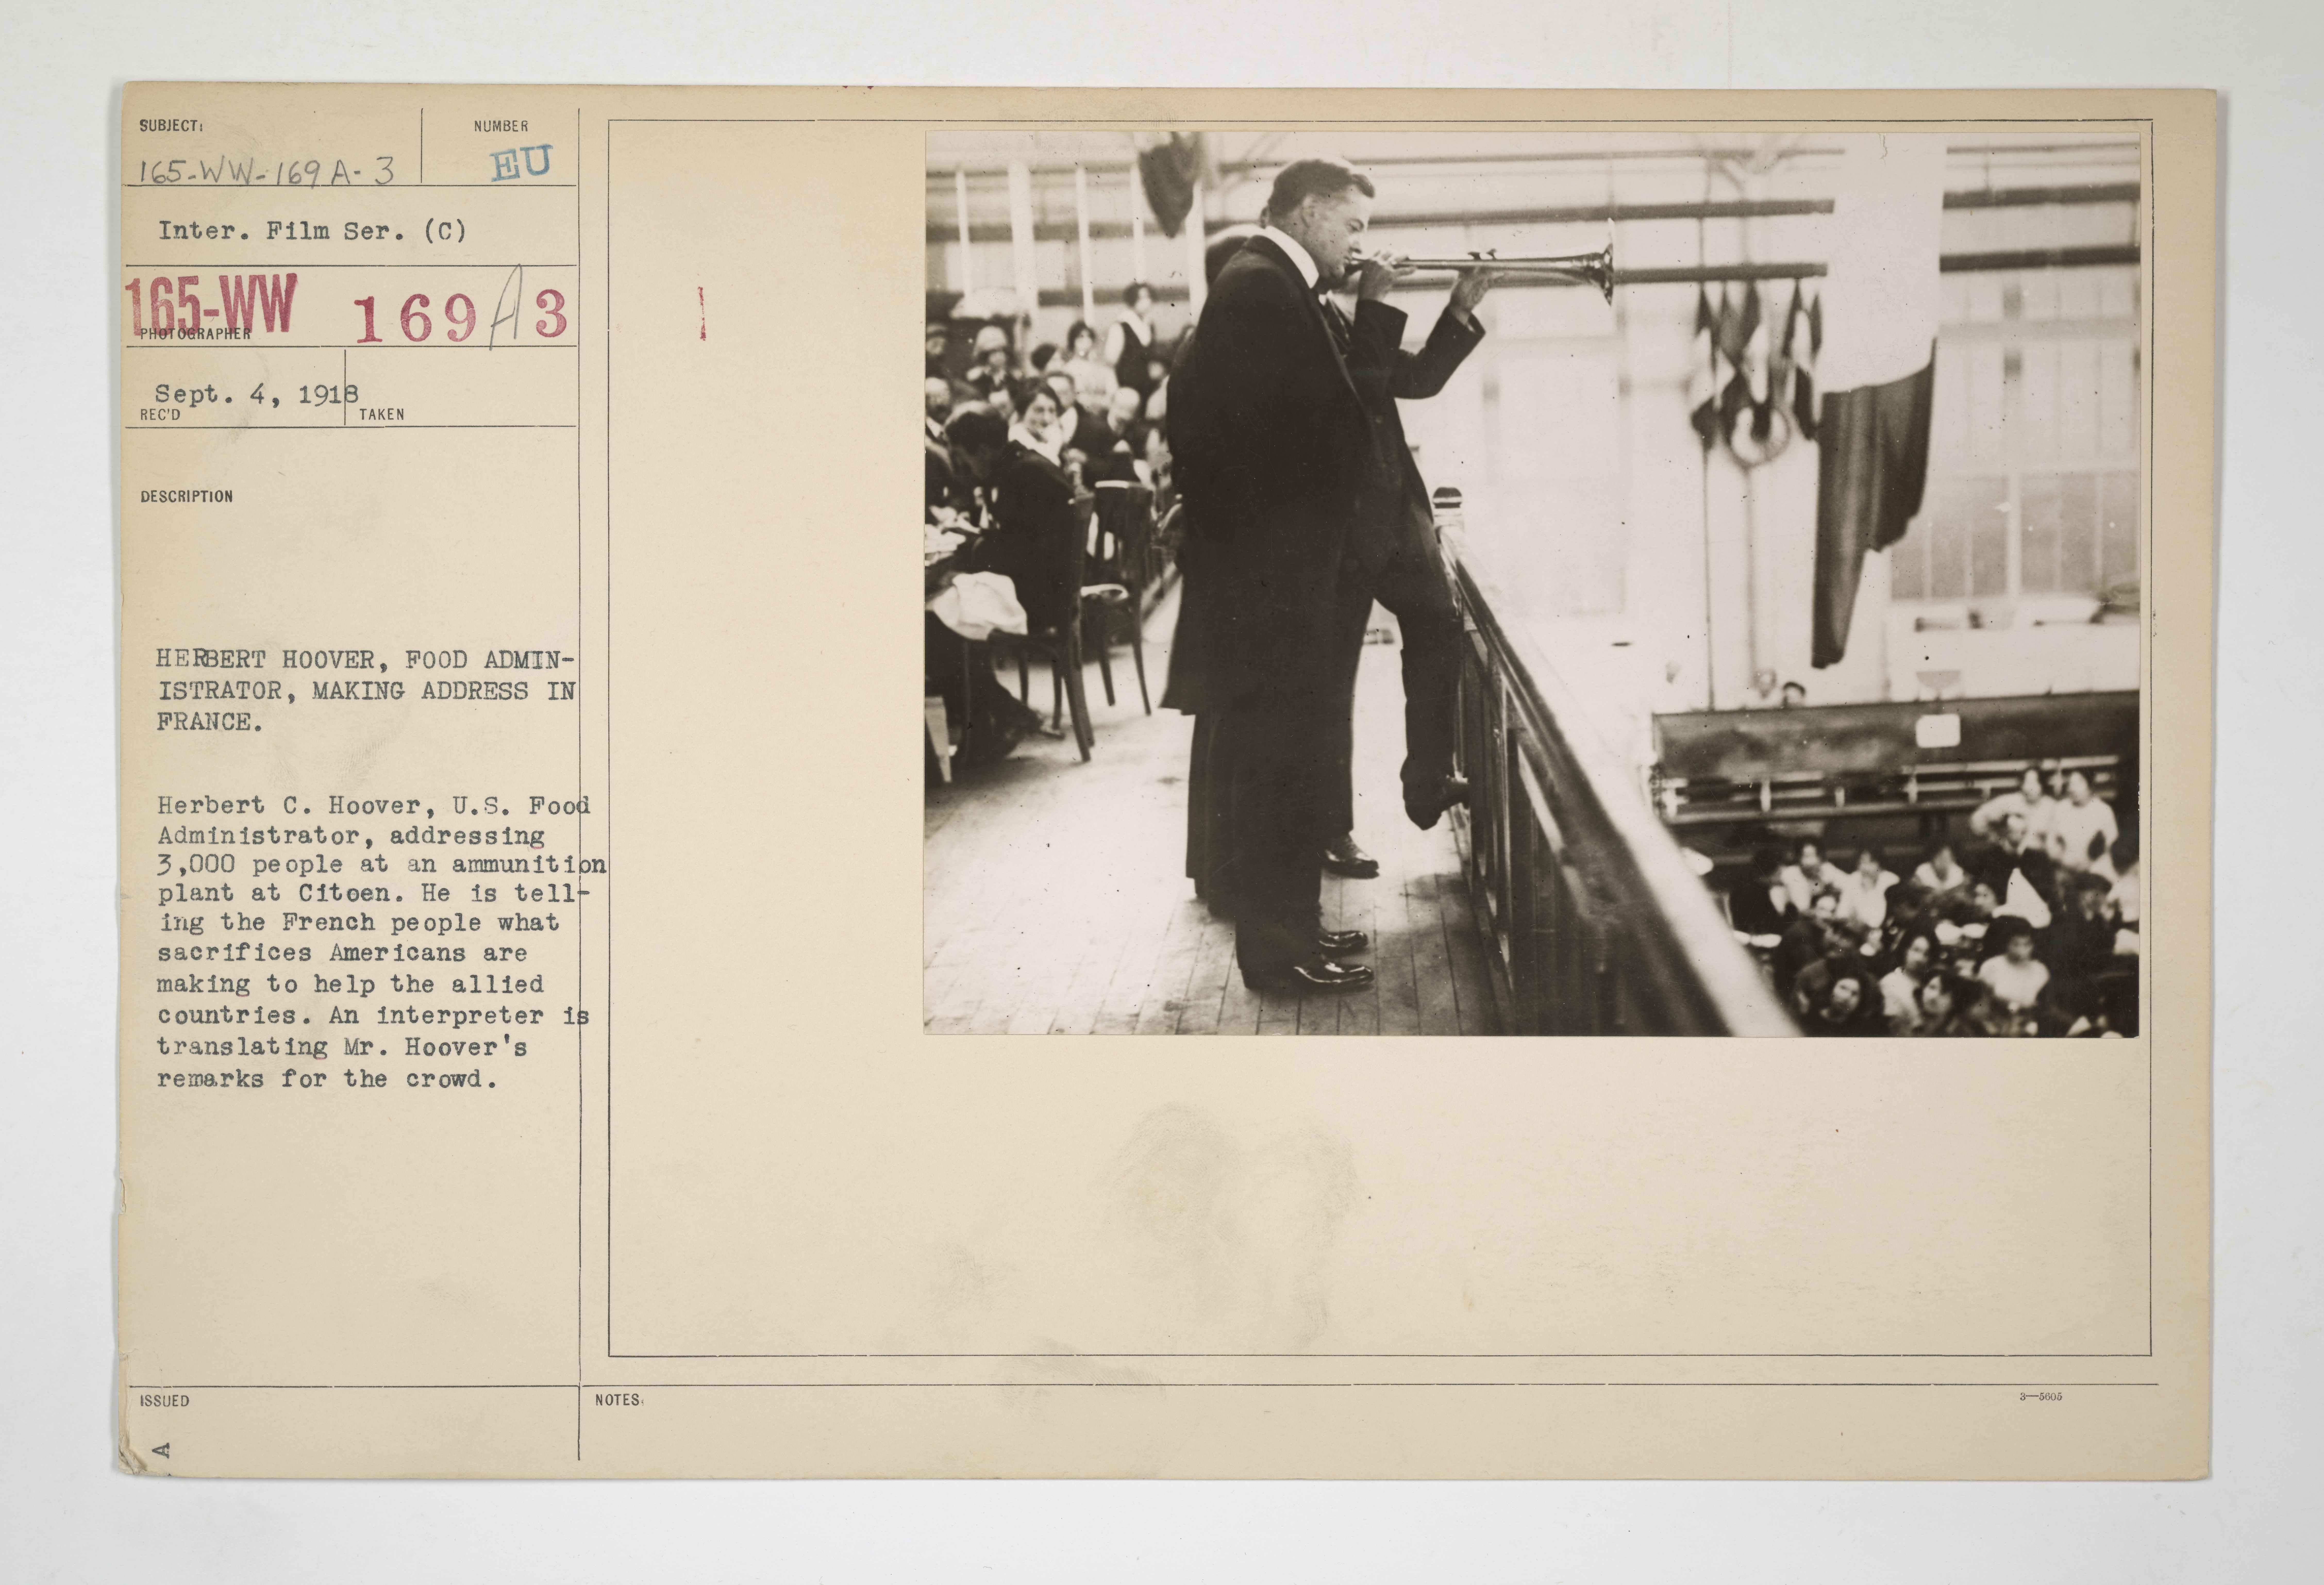 Food Administration - Administrators and Staff - Herbert Hoover, Food Administrator, making address in France